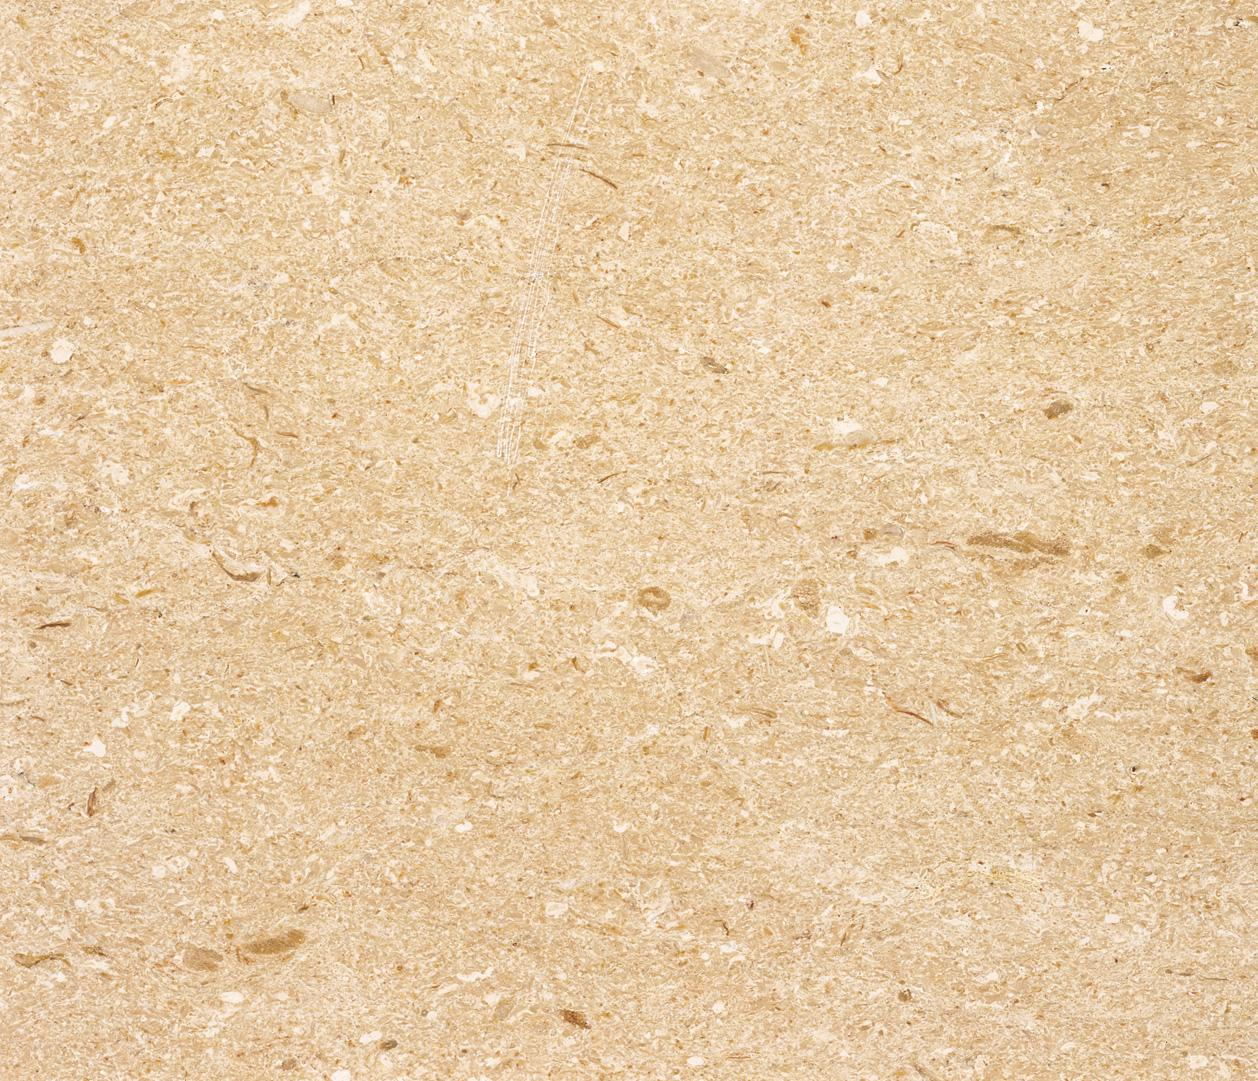 Sandwave Cream Marble Tiles Slabs And Countertops